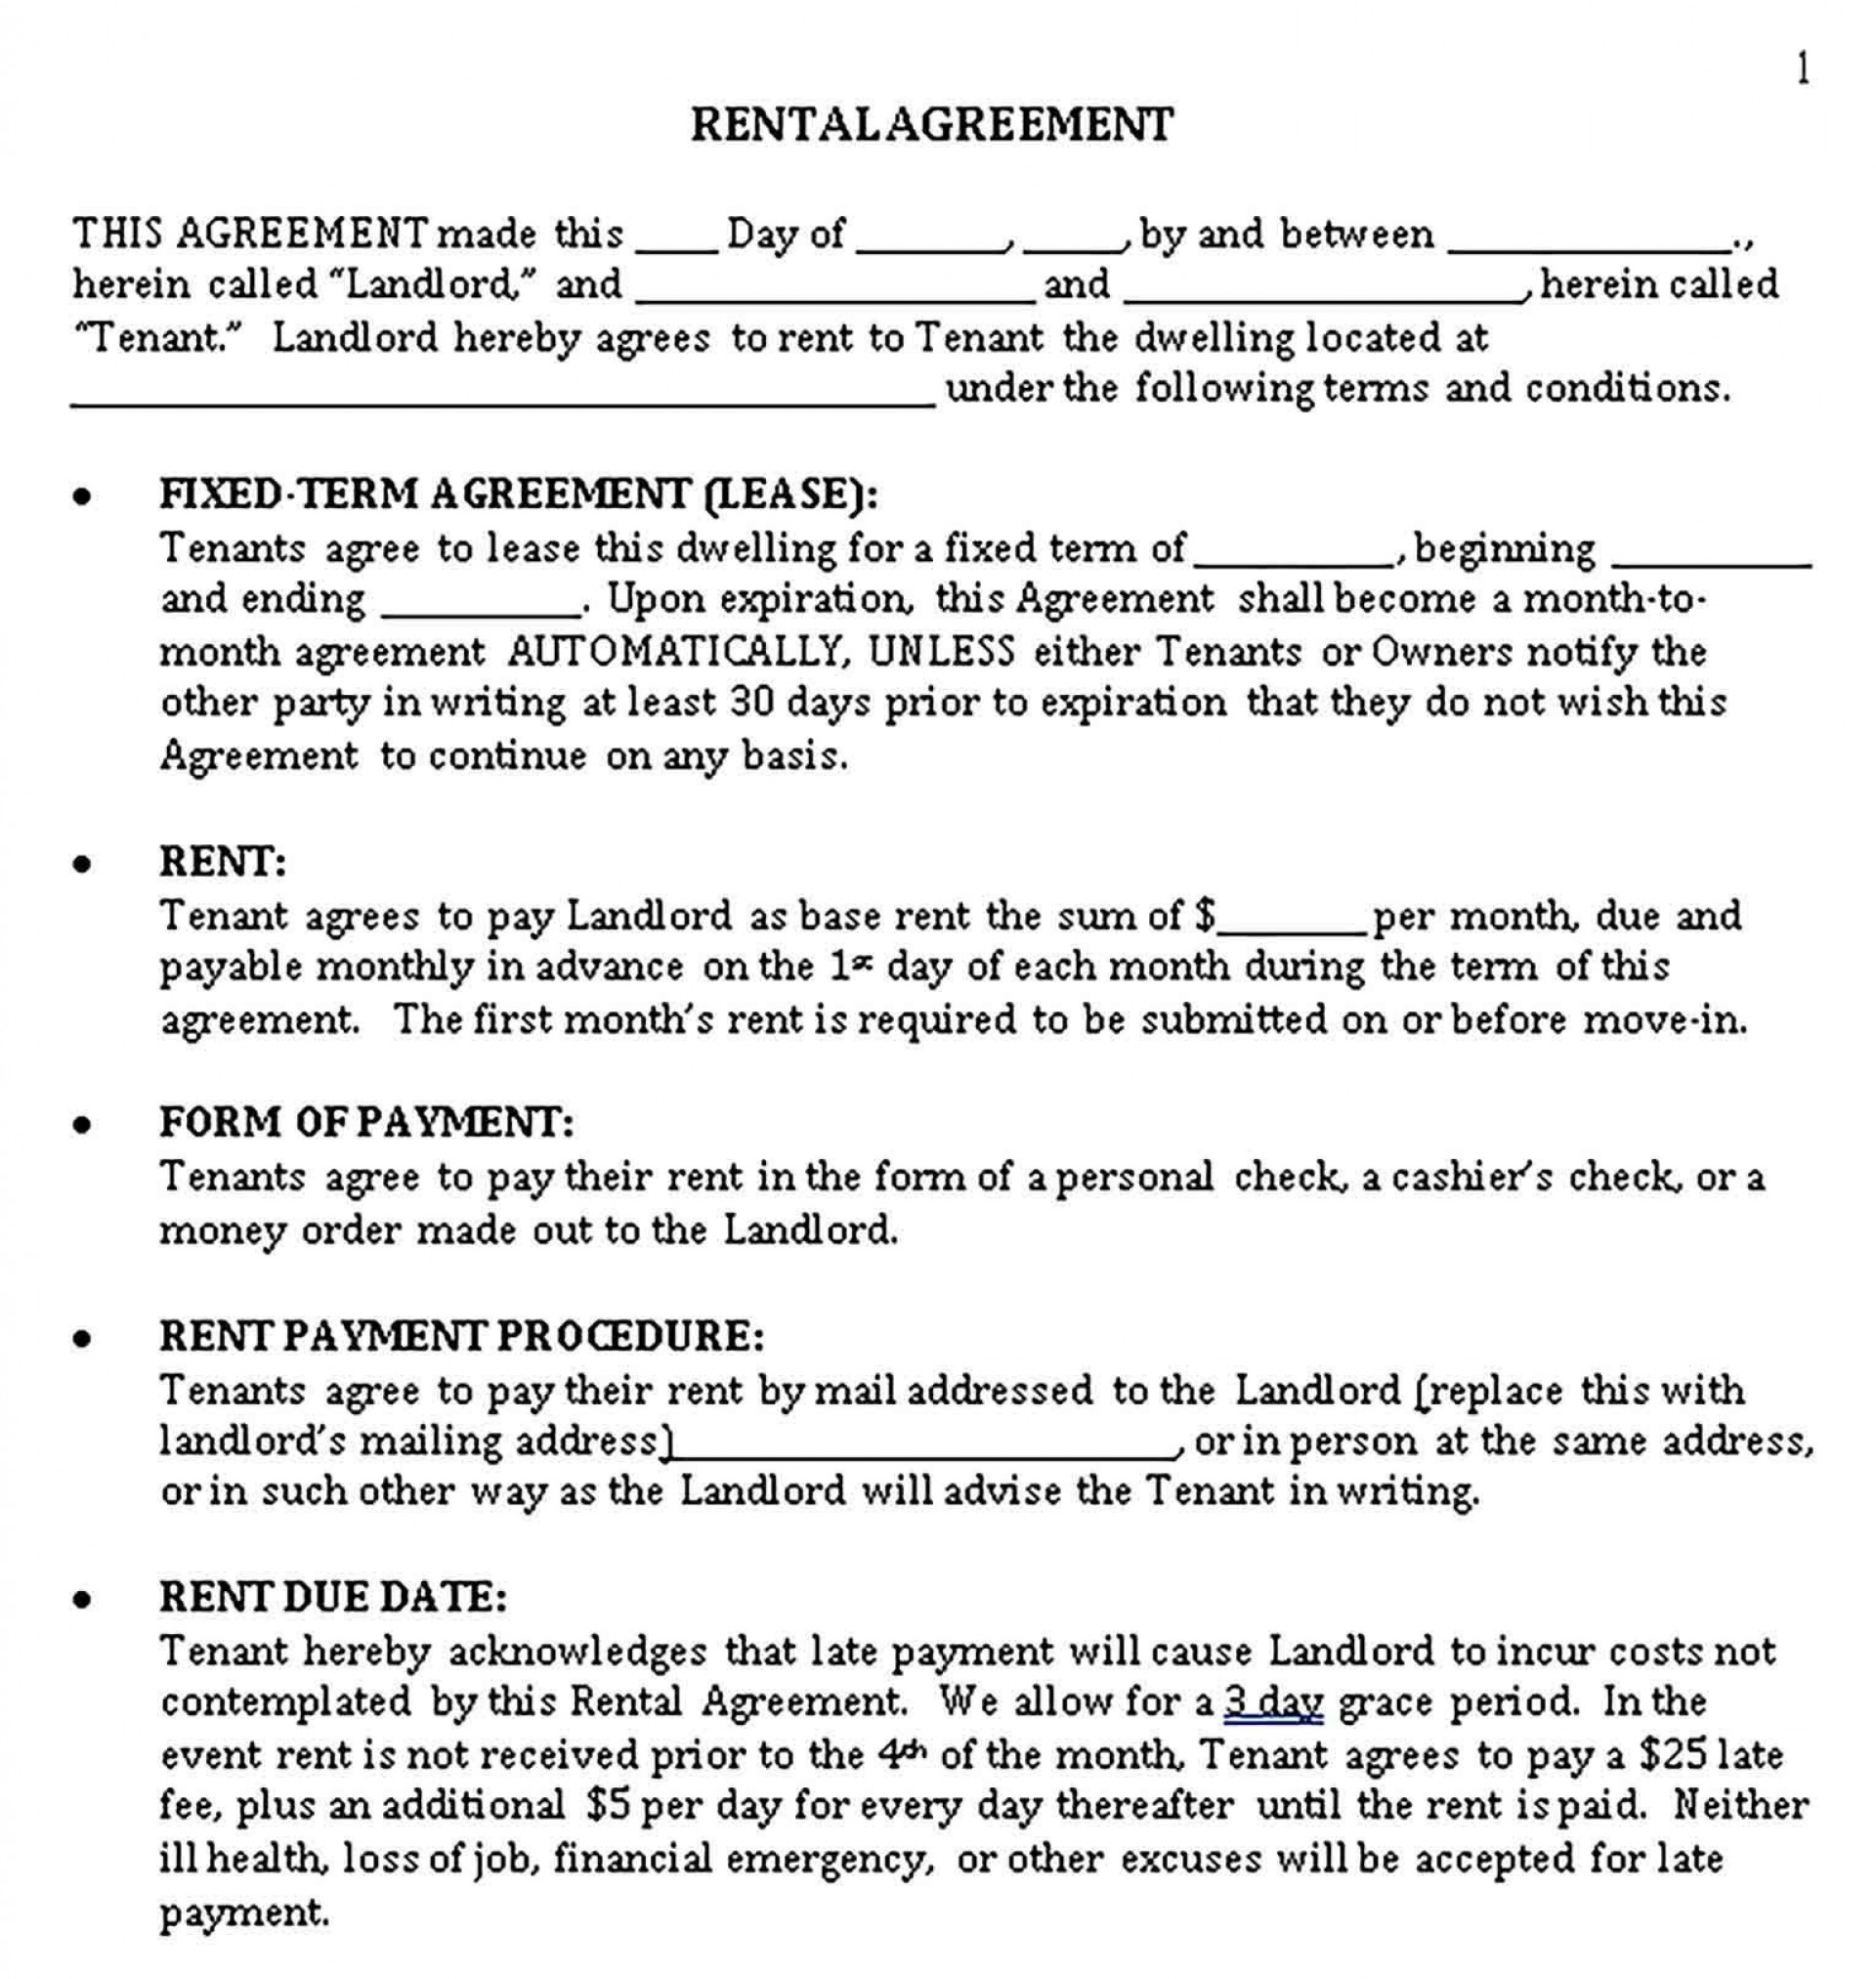 001 Simple Sample House Rental Agreement Template High Resolution  Contract Lease1920